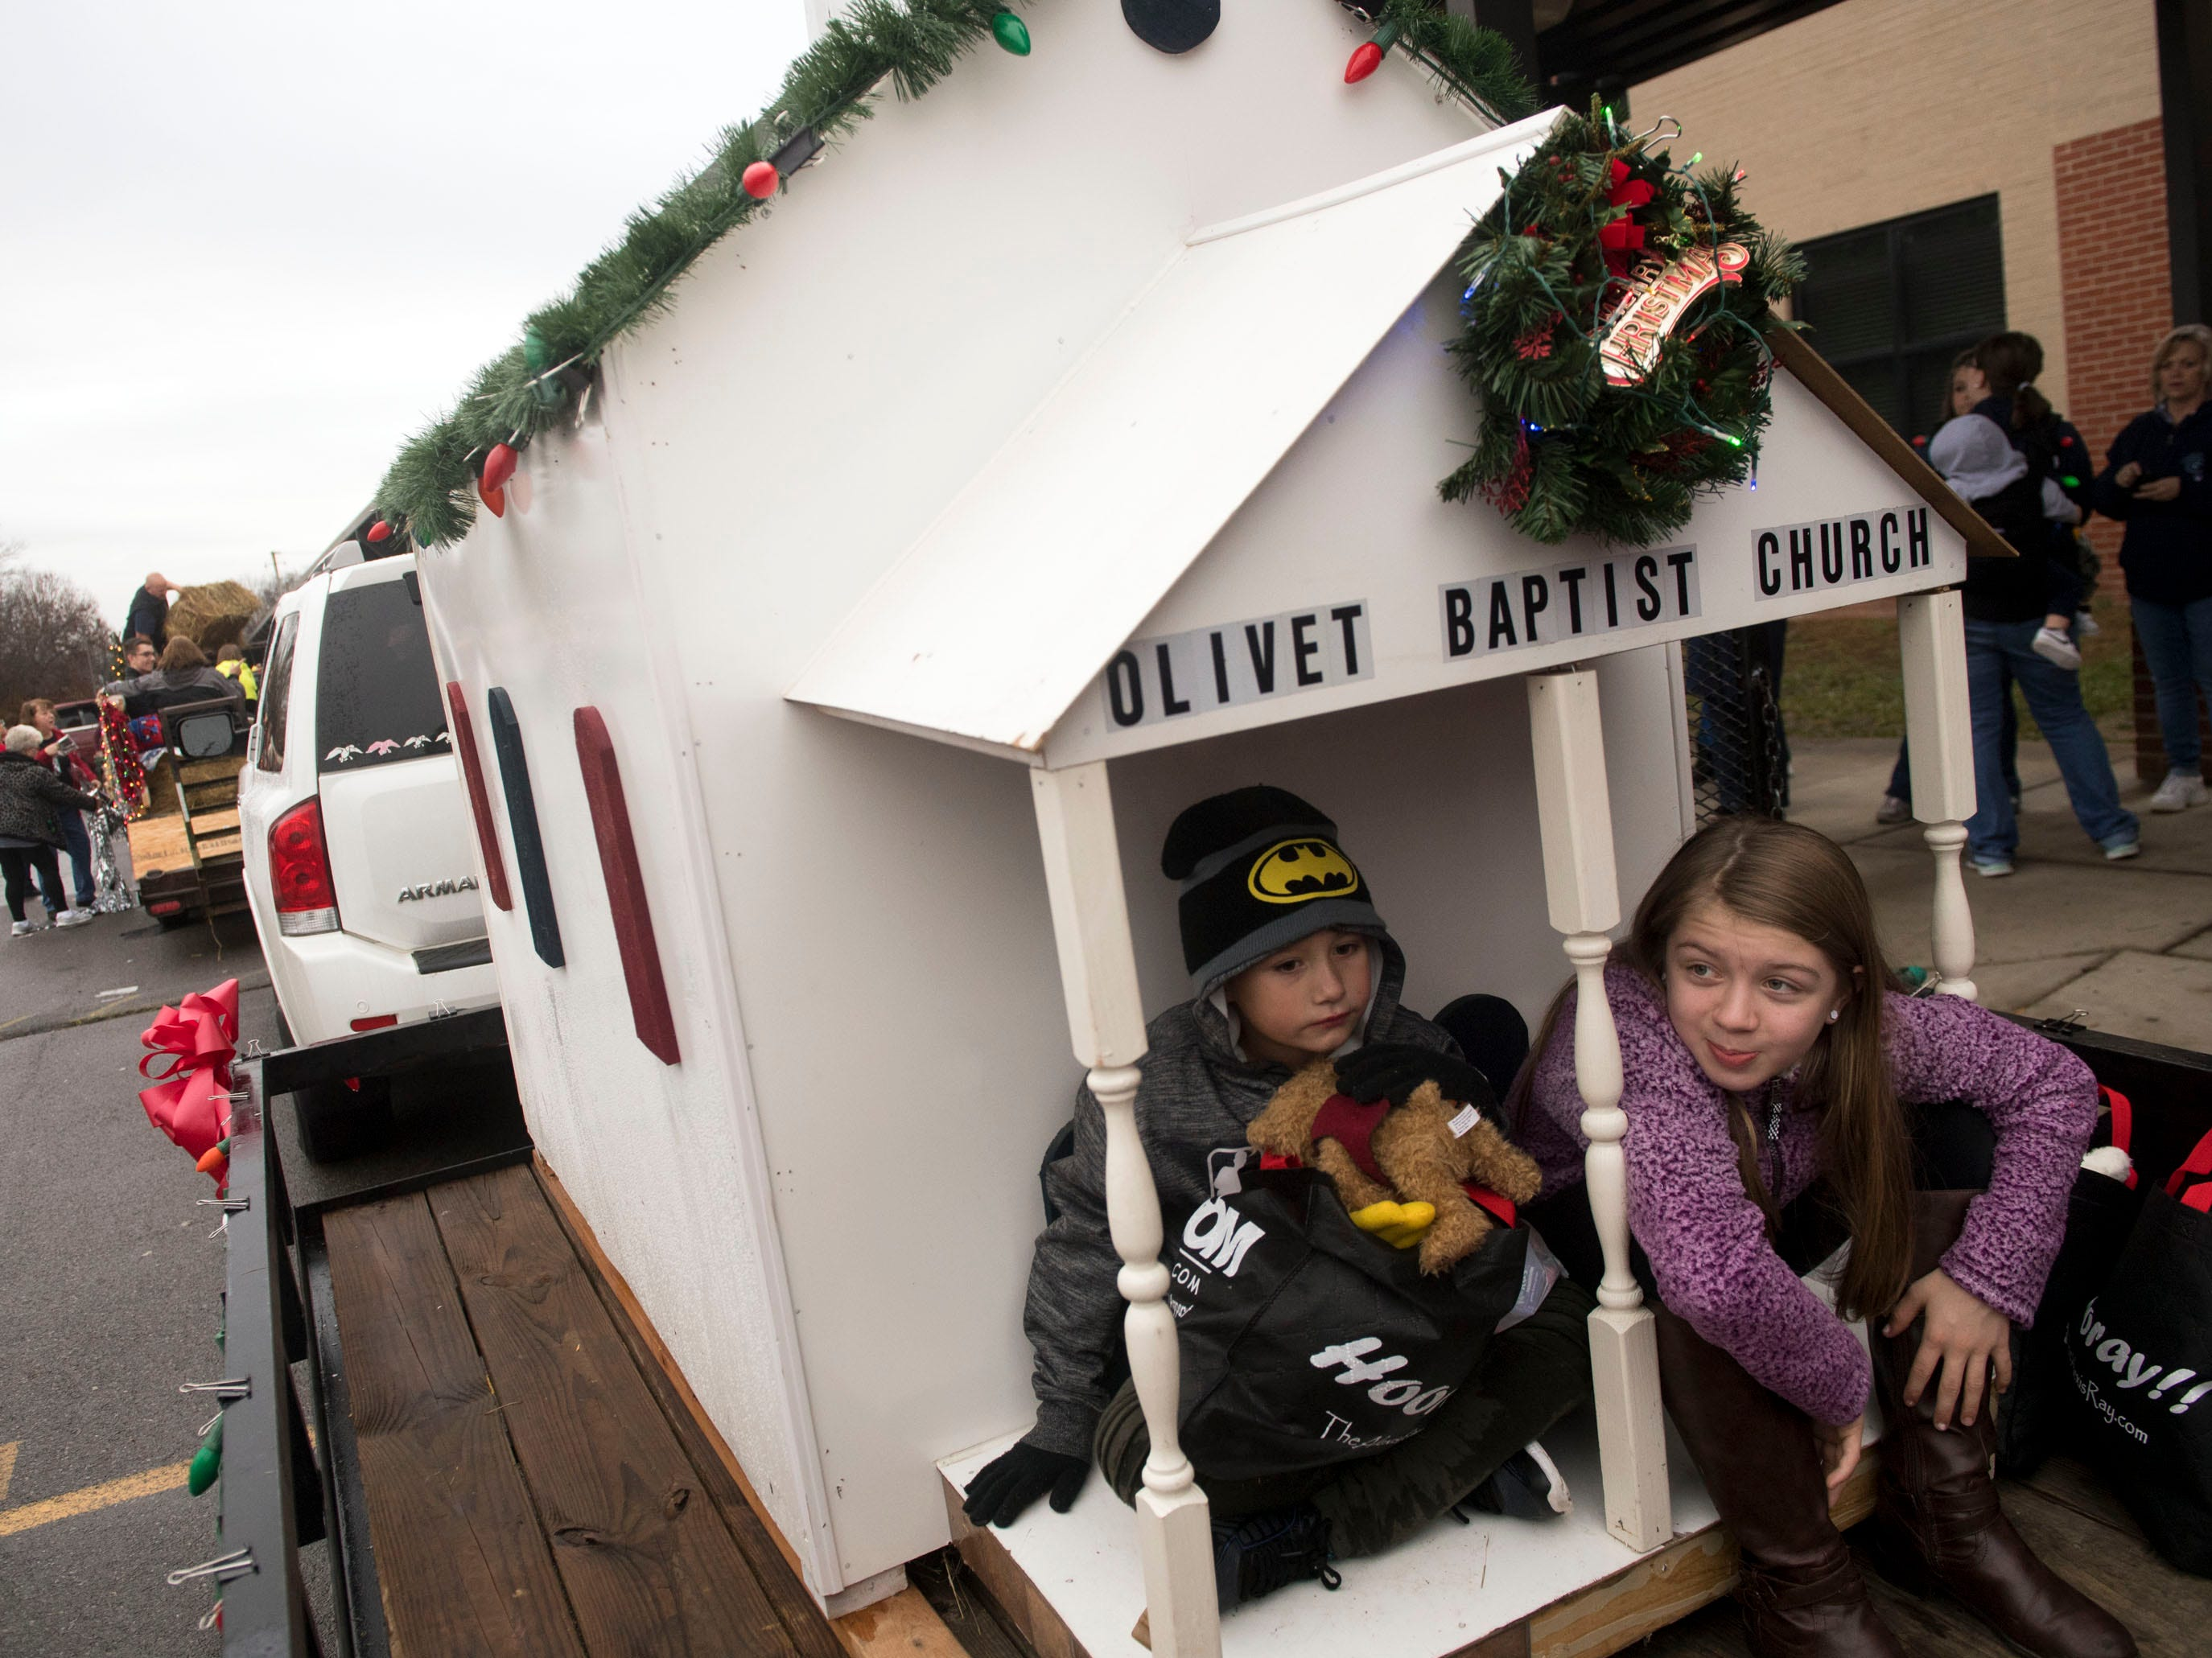 Braylan Perry and Addy Caldwell sit on the back of the Olivet Baptist Church float the the Powell Lions Club Christmas Parade on Saturday, December 1, 2018.